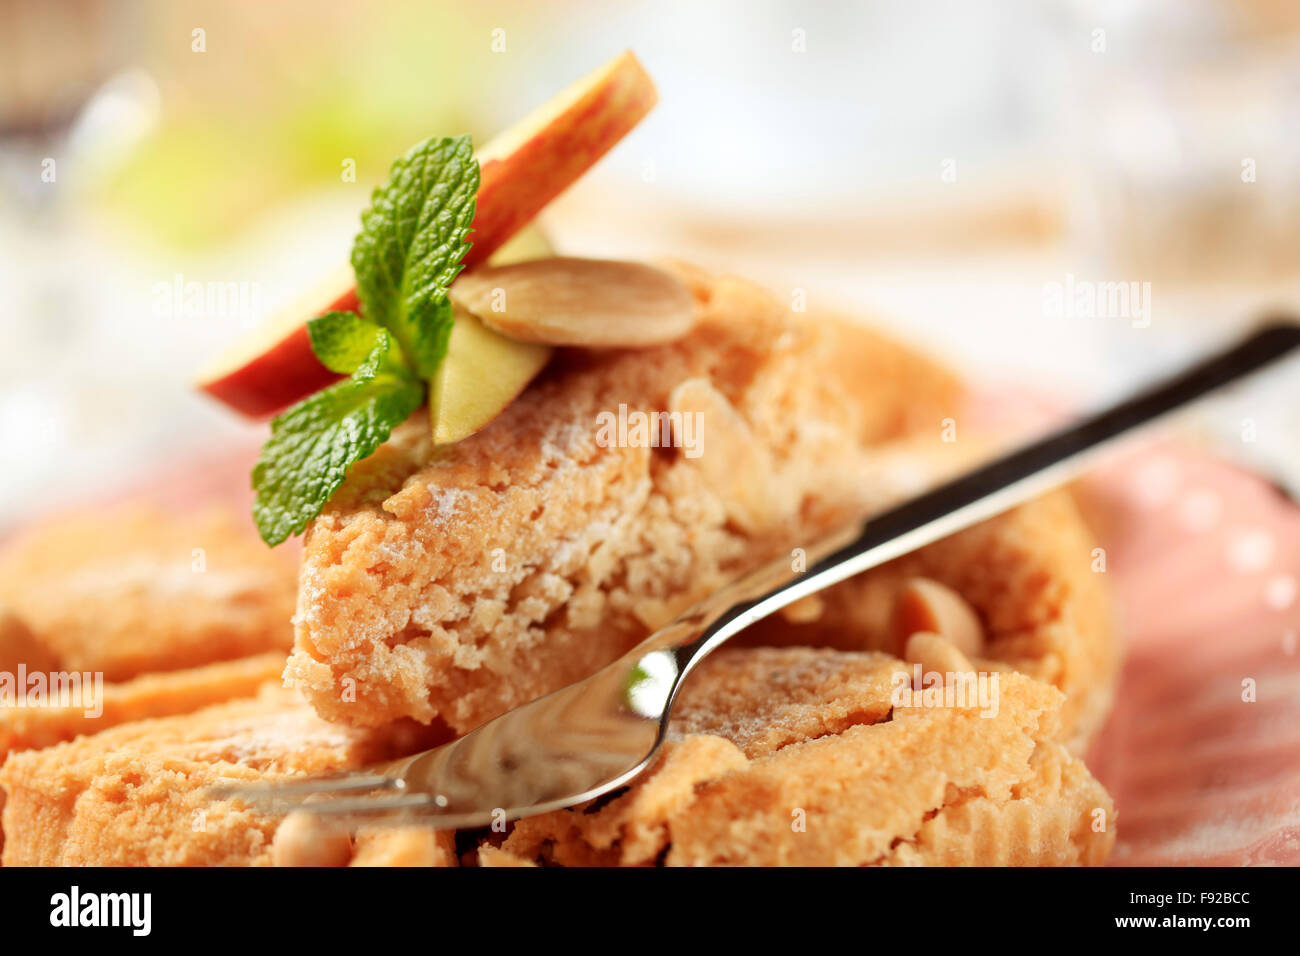 Fresh baked almond dessert pie - Stock Image